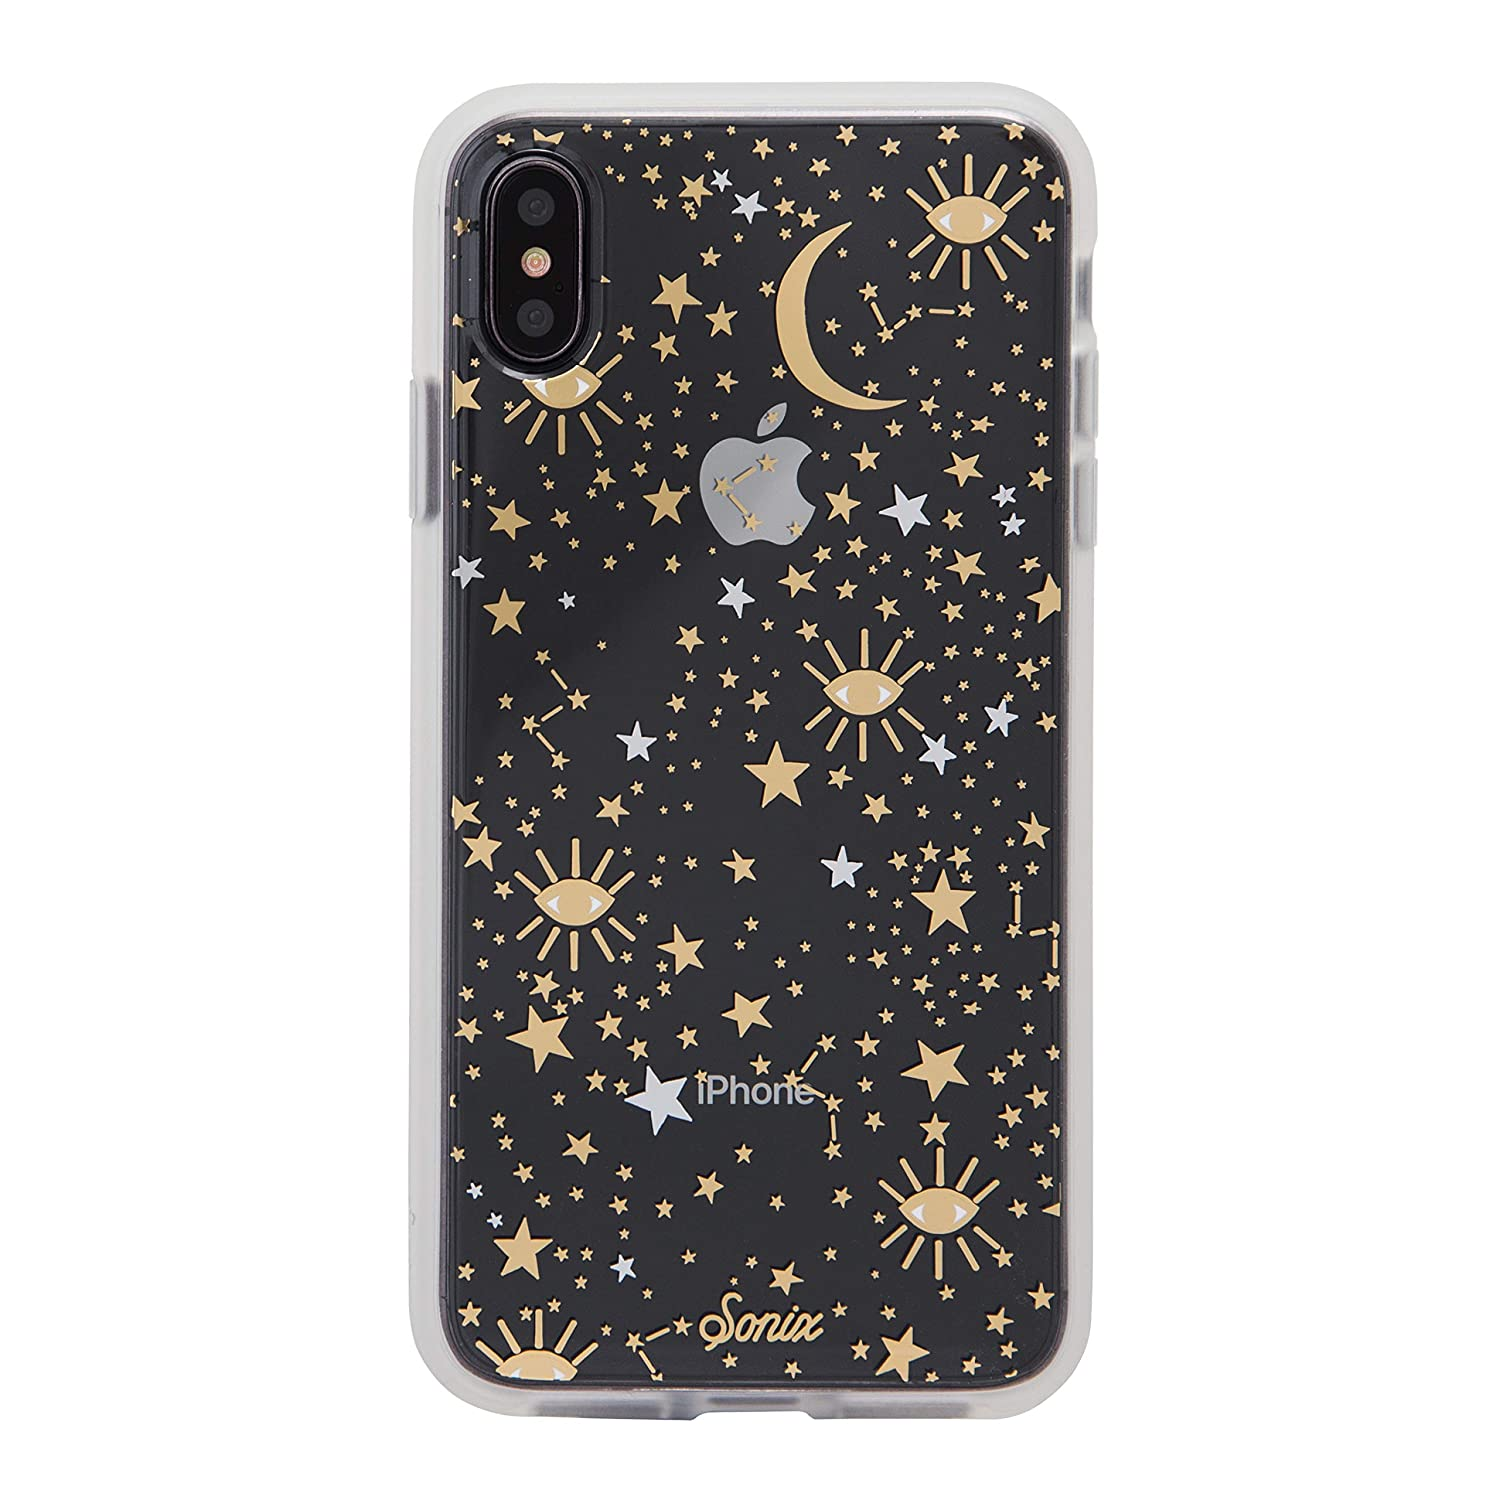 the latest fdf3e 57ed0 Sonix Cosmic (Gold, Silver Stars) [Military Drop Test Certified] Protective  Clear Case Series for Apple iPhone Xs Max